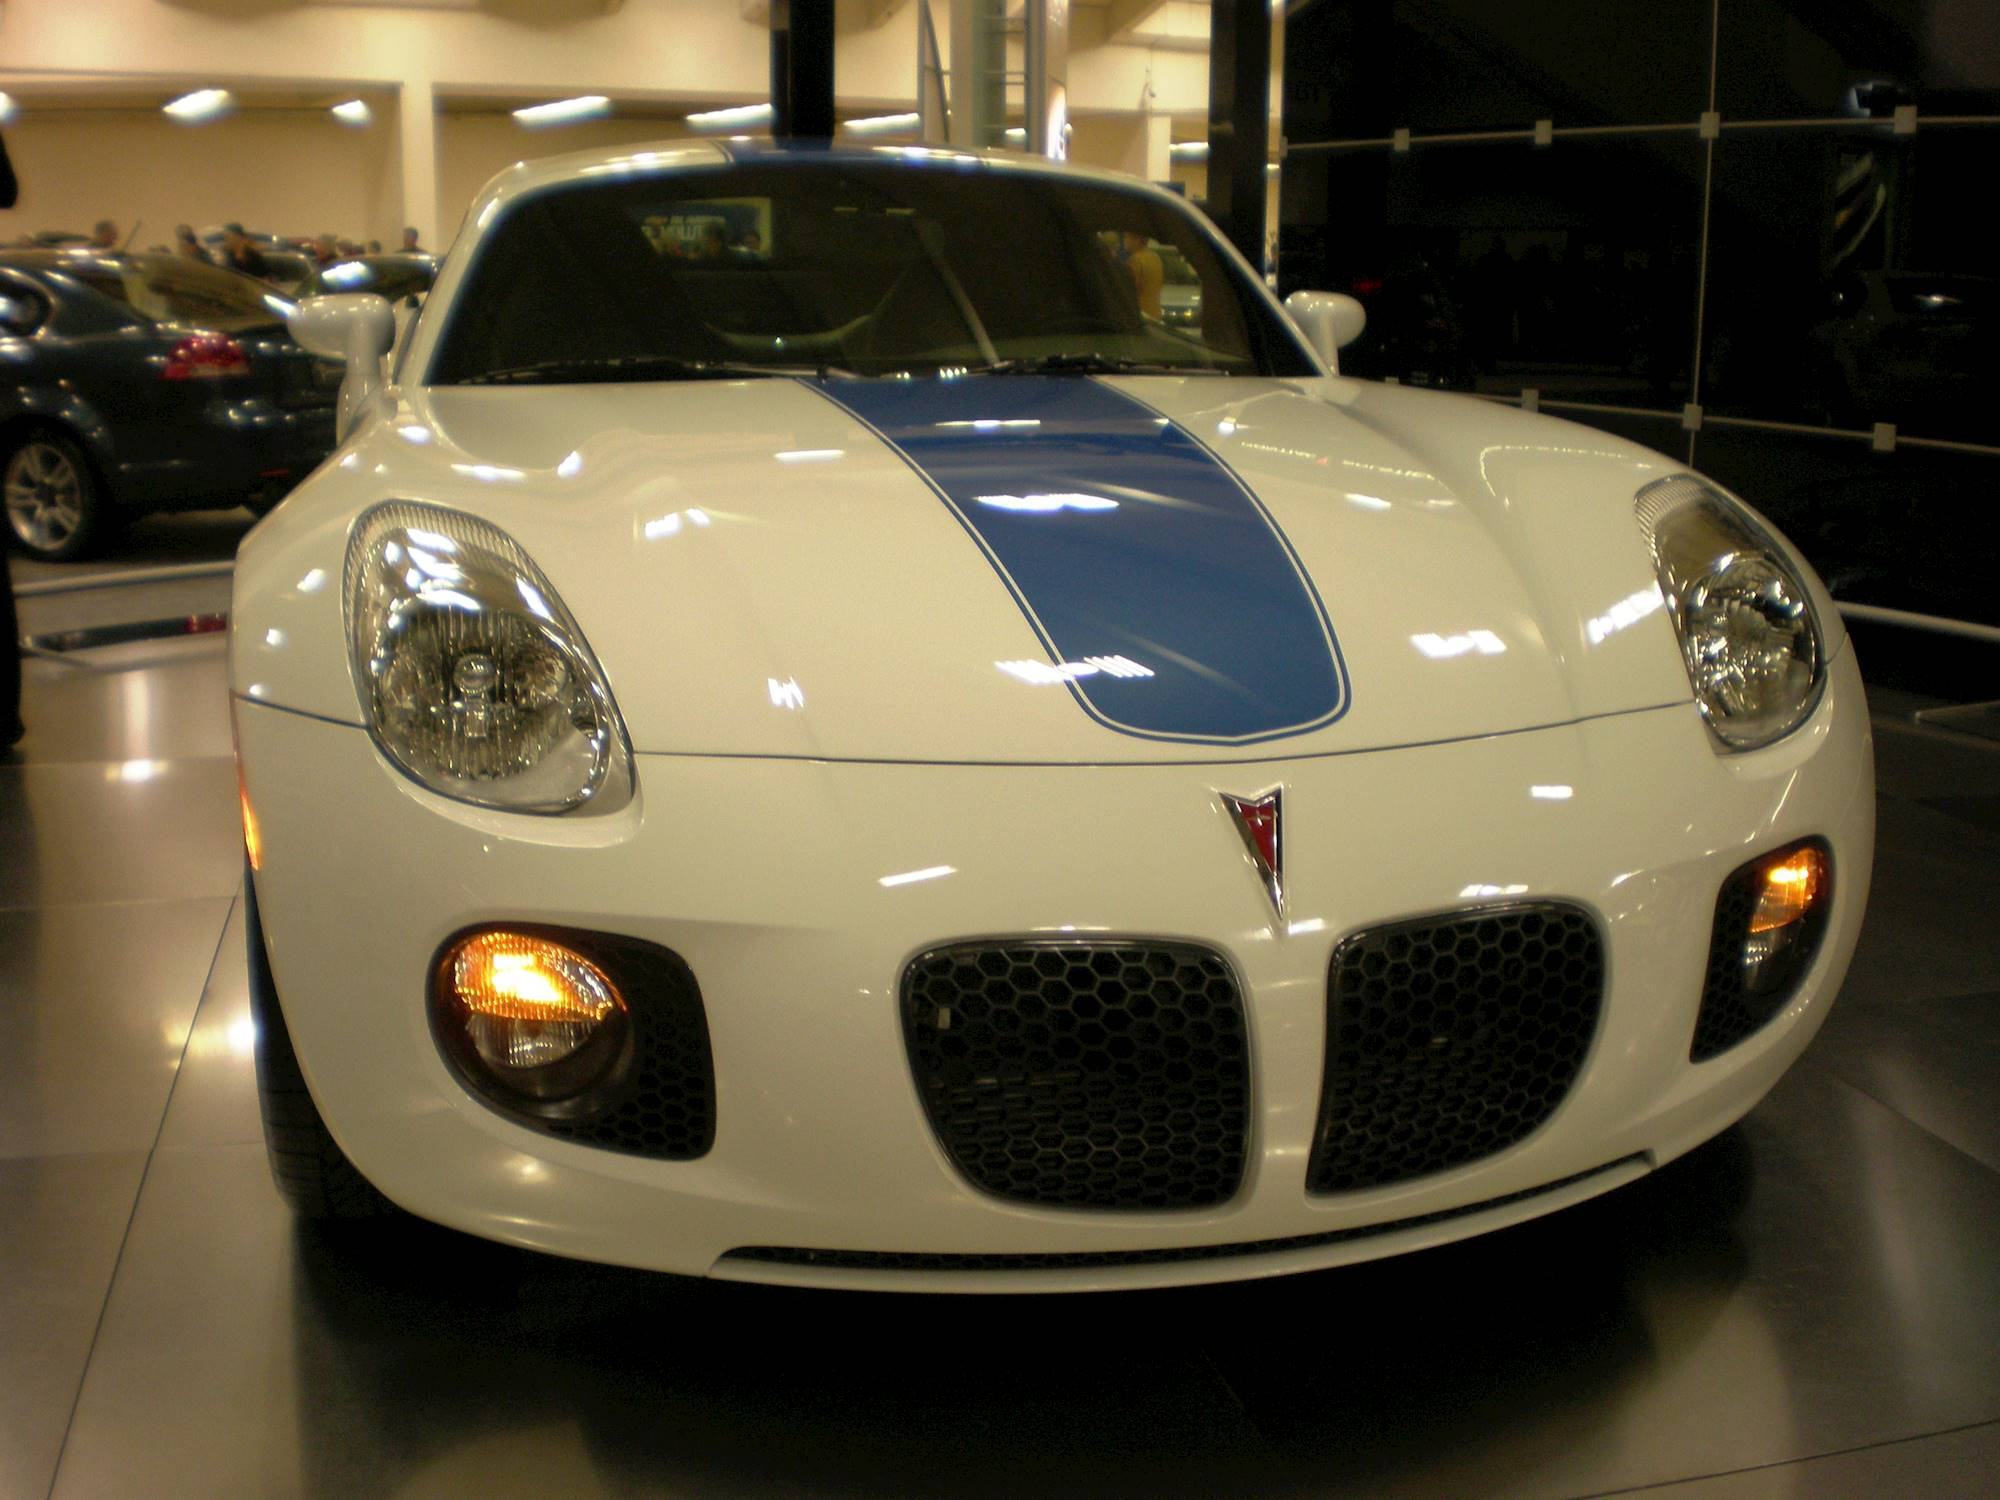 2008 Pontiac Solstice Scca T2 Champion Edition Convertible 2 0l Turbo Manual